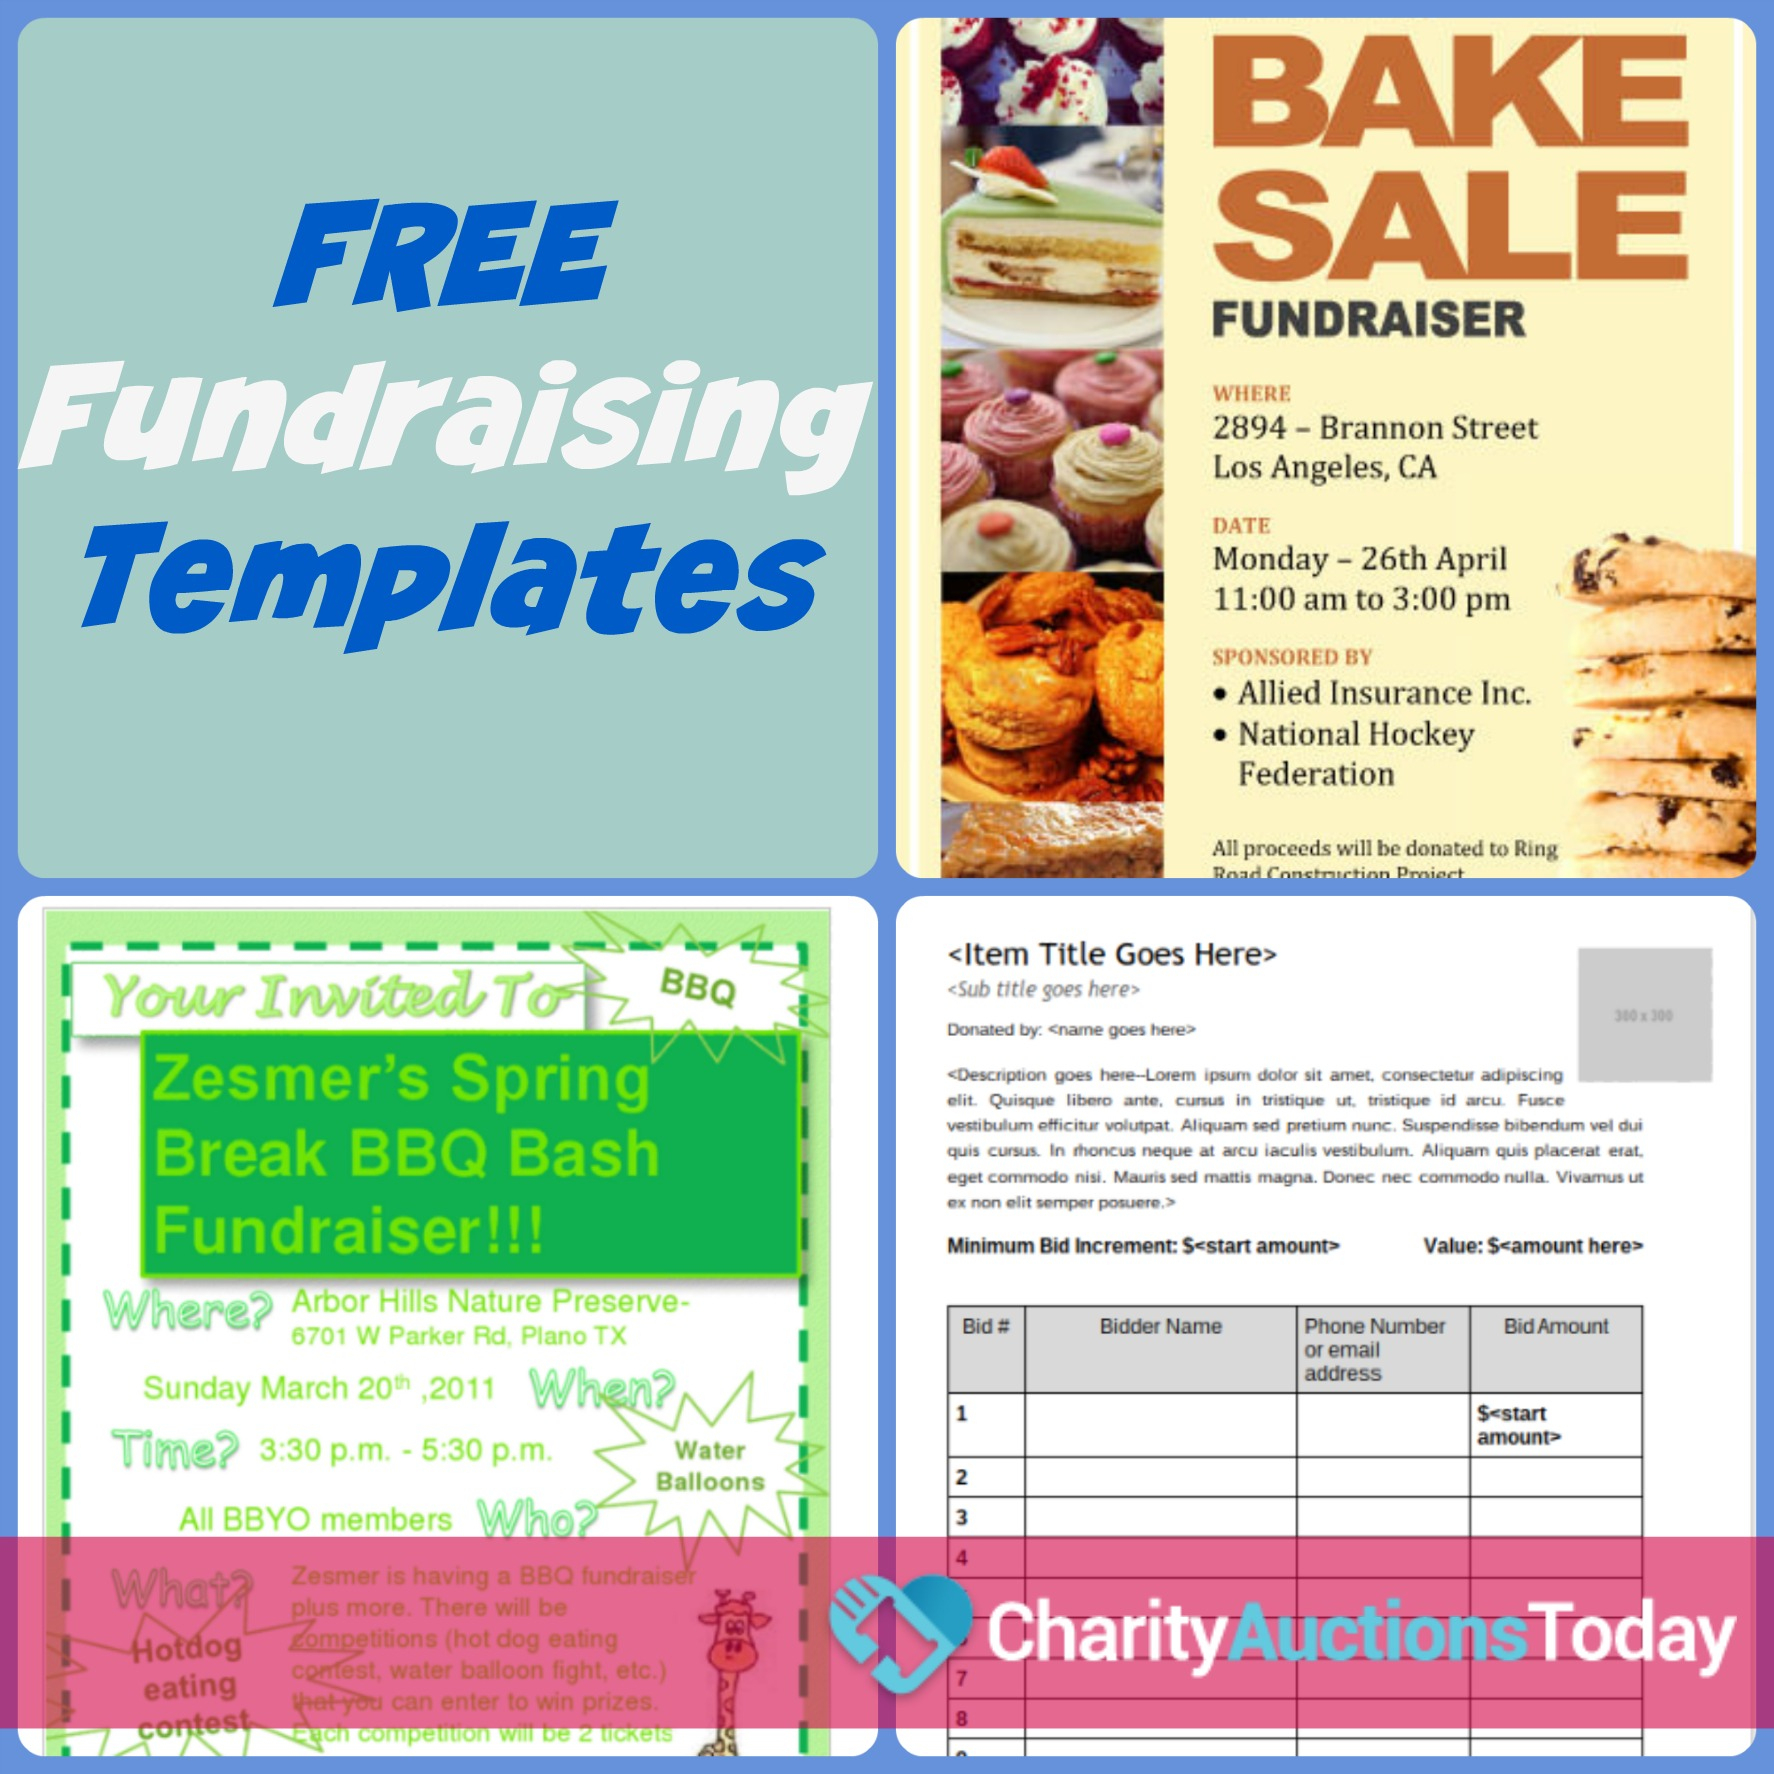 Free Fundraiser Flyer | Charity Auctions Today - Free Printable Flyer Templates